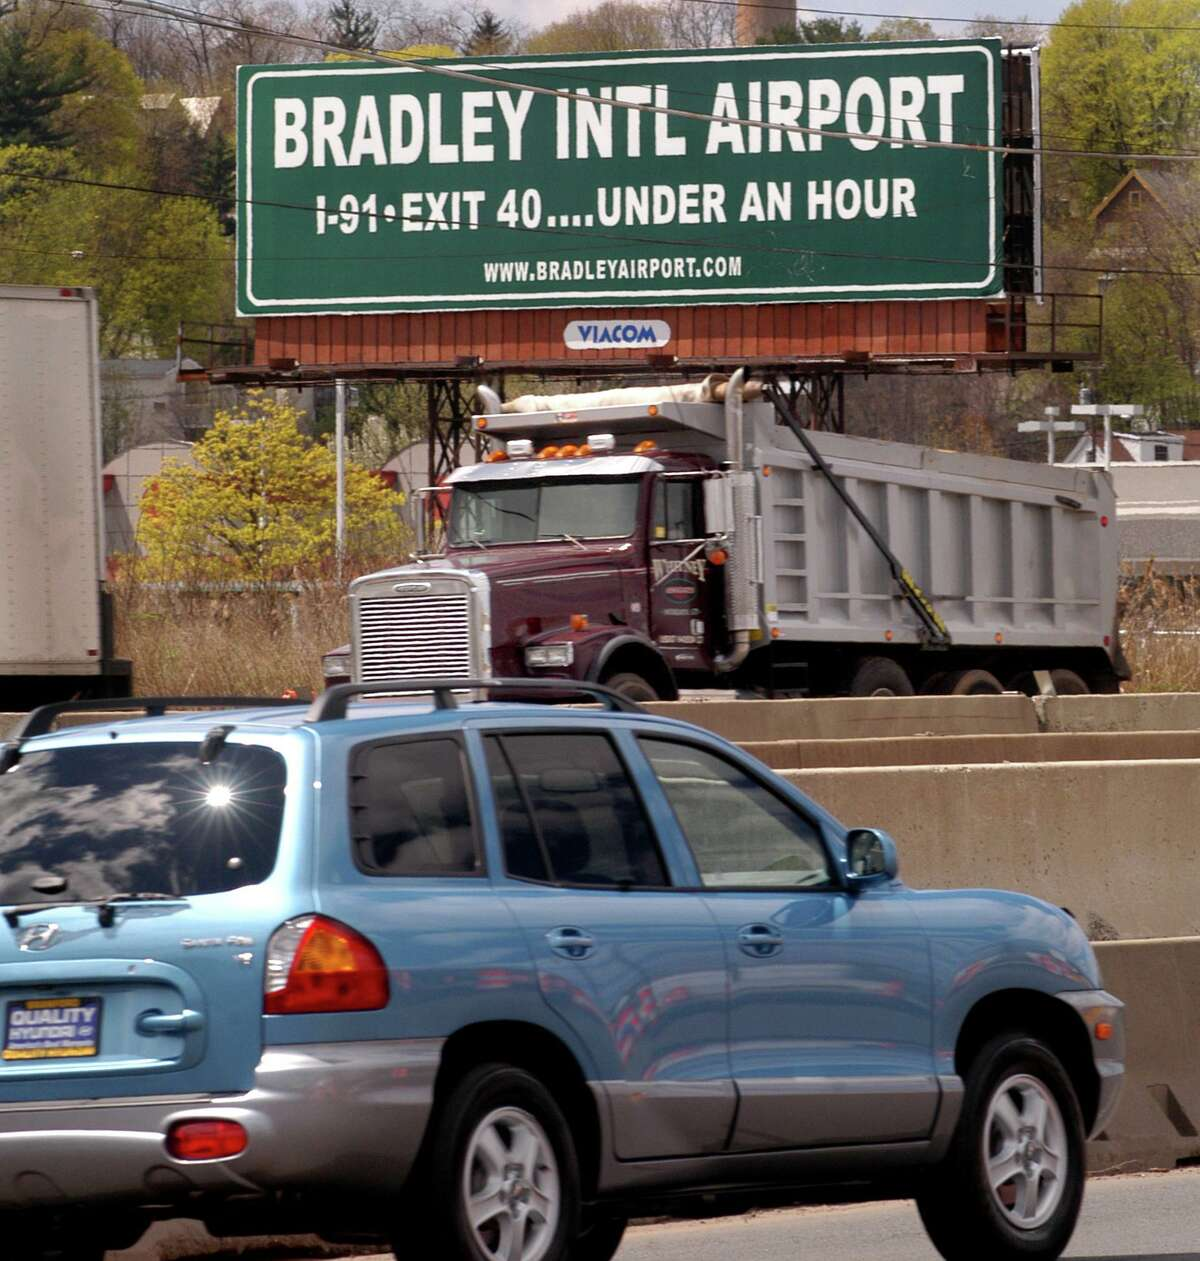 Hoping to meet a growing need for testing and increase travel, Bradley International Airport is offering a second COVID testing site, starting Nov. 23, 2020. Melanie Stengel/Register